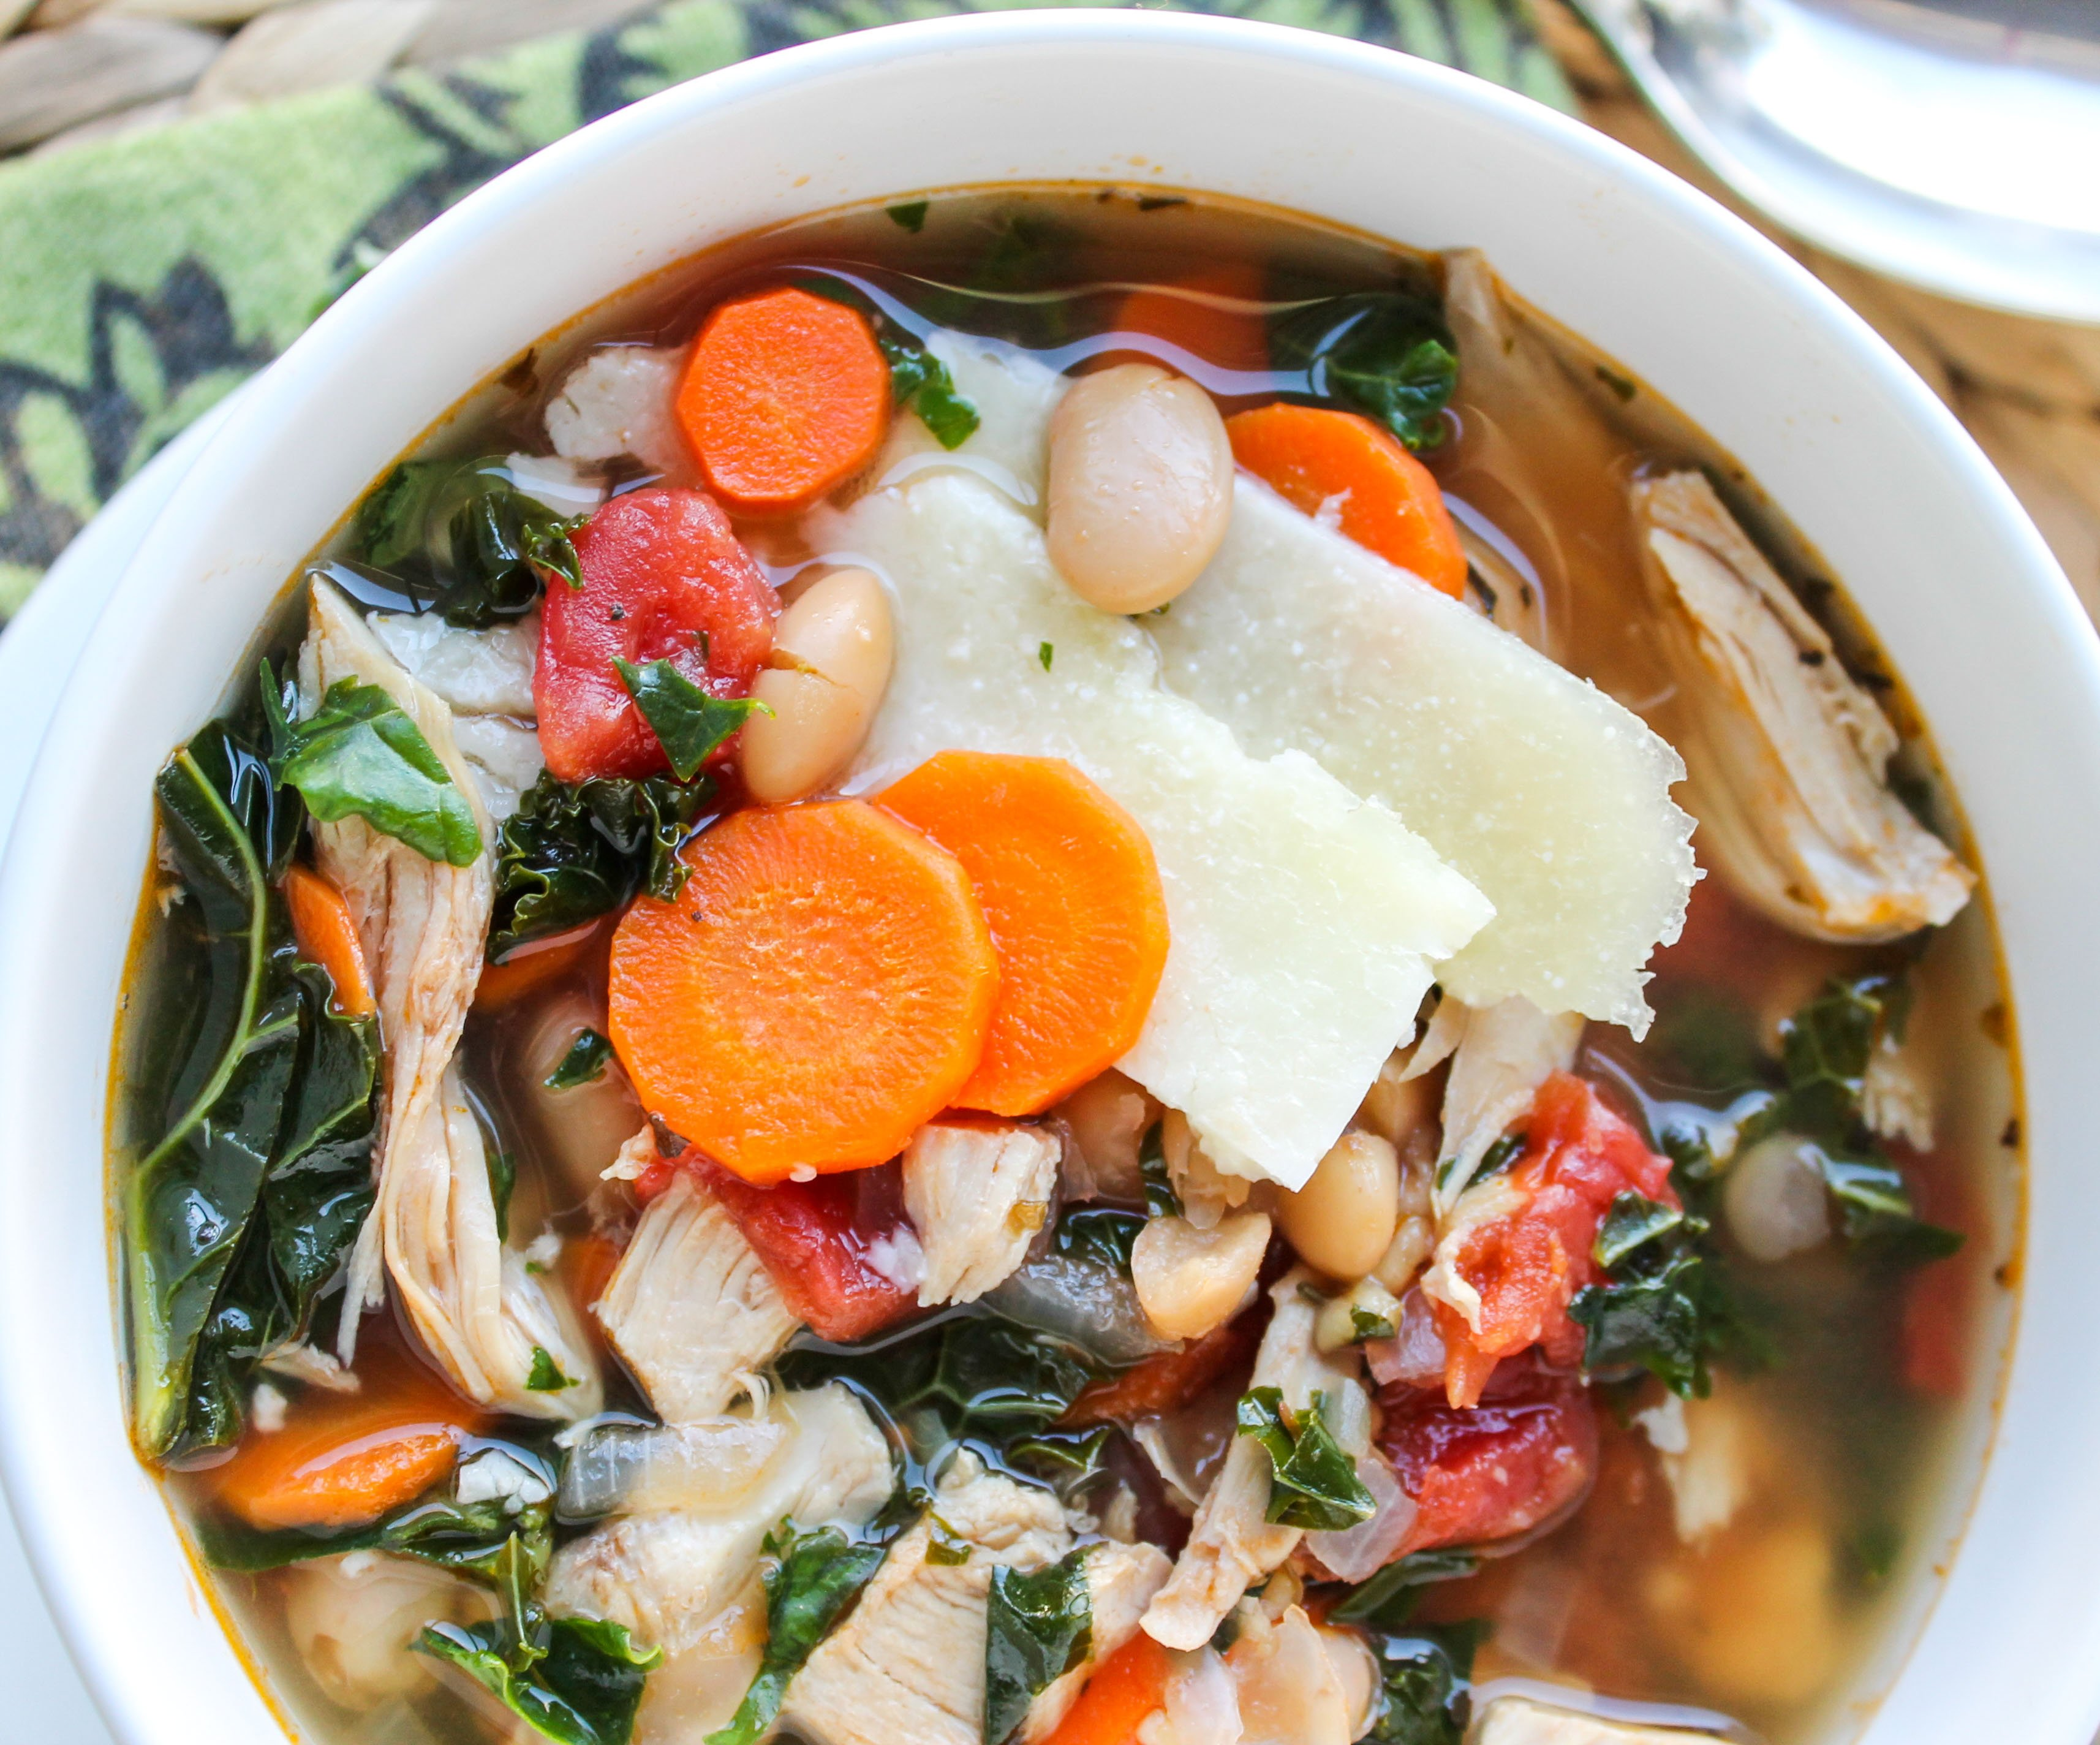 Kale Chicken White Bean Soup With Parmesan Shavings The Food